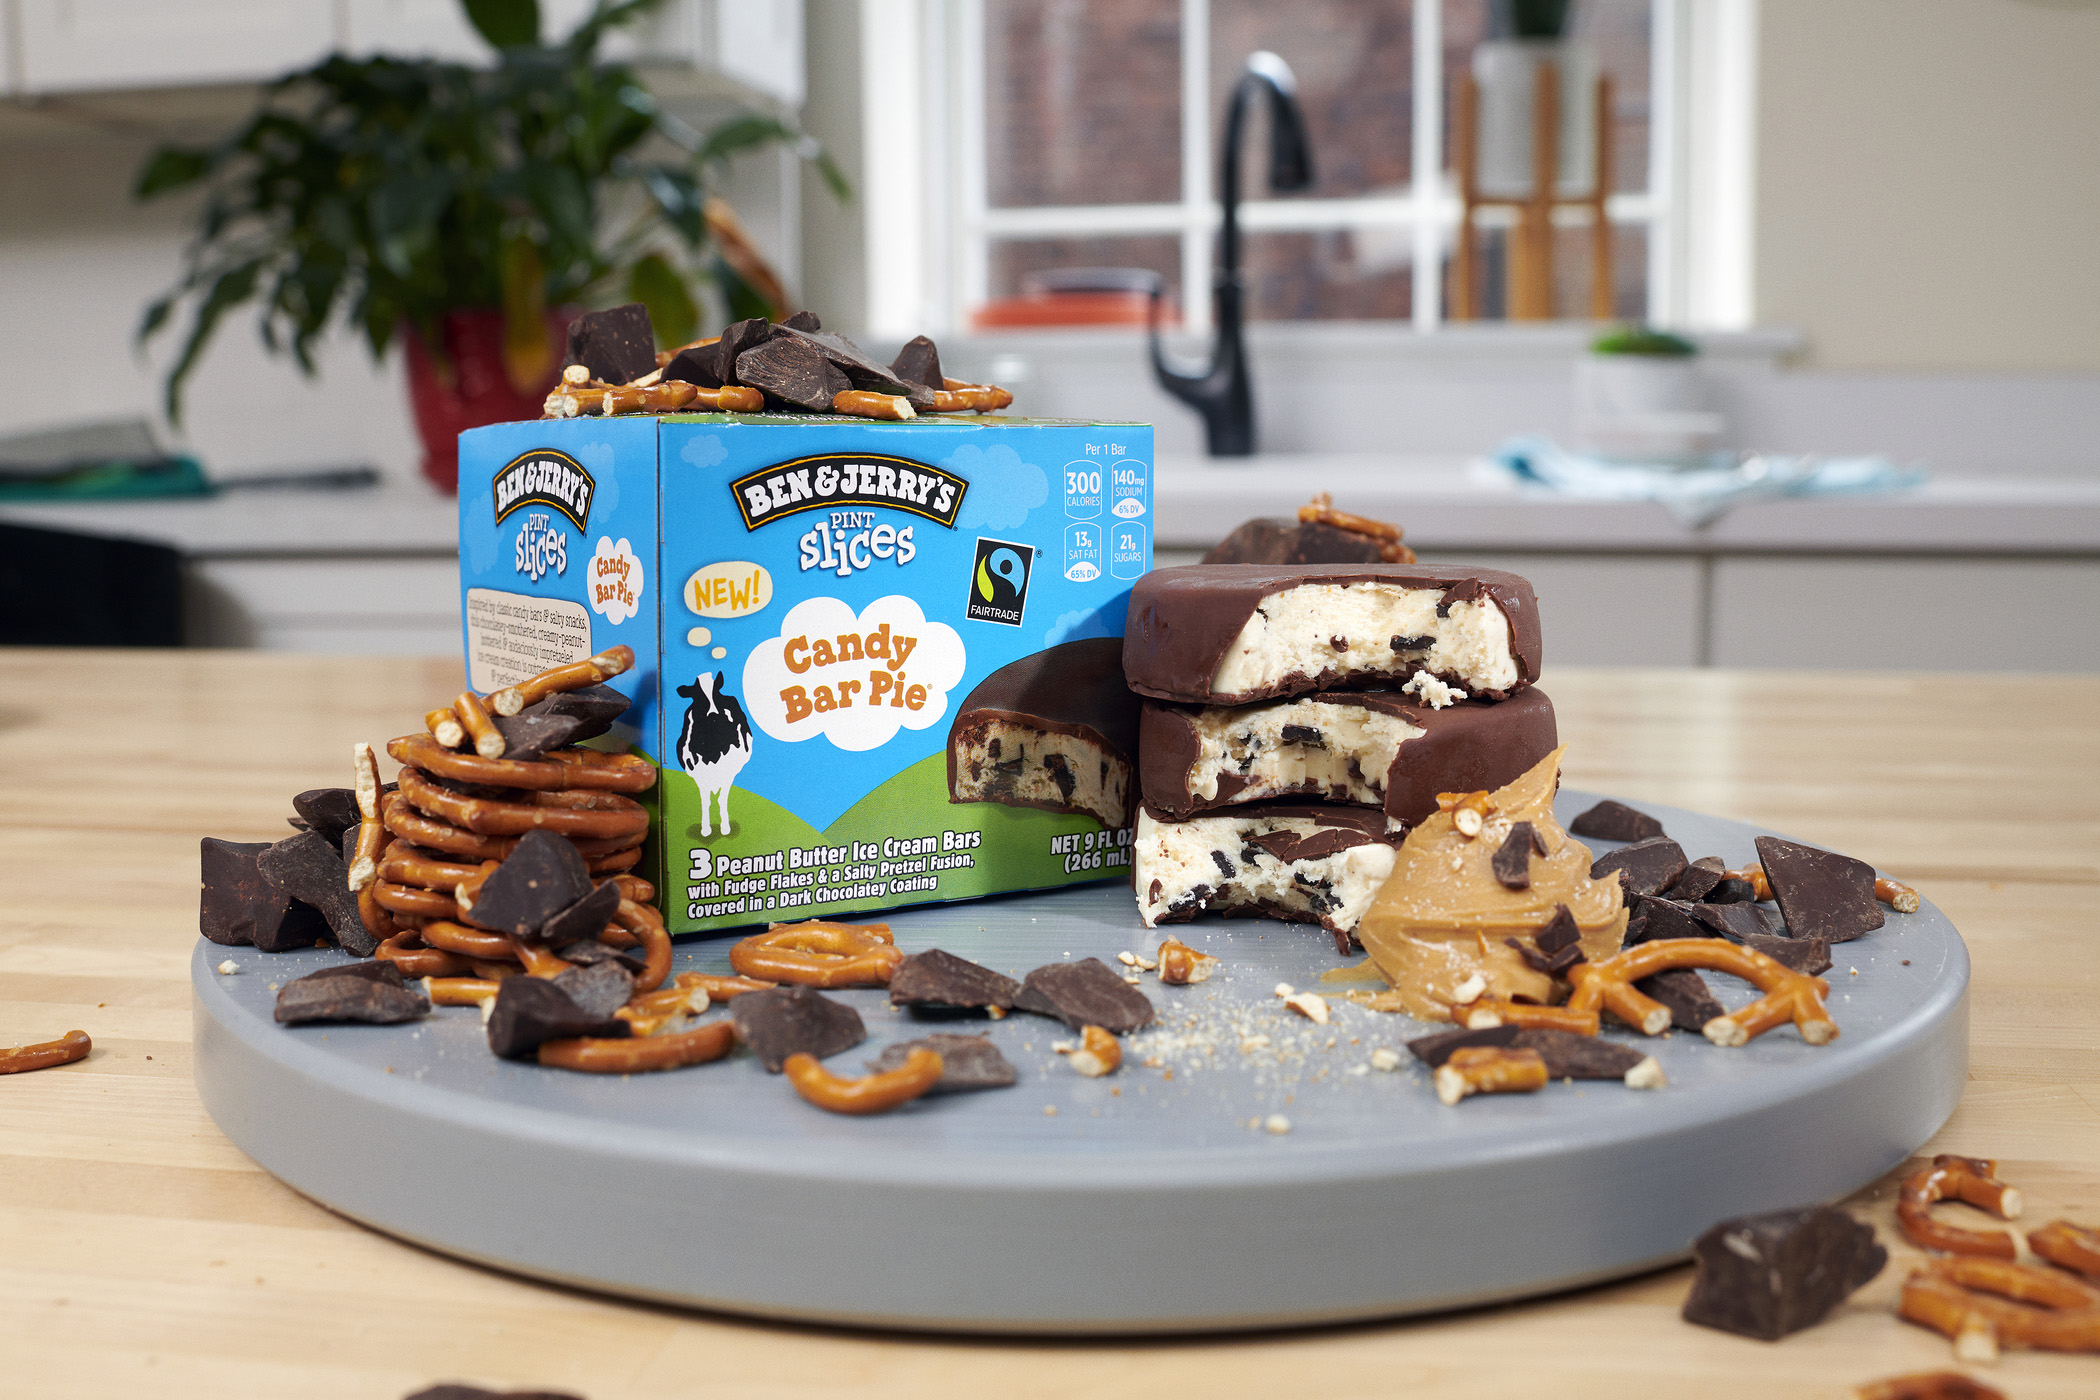 Candy Bar Pie was a Limited Batch flavor that went to Ben & Jerry's Flavor Graveyard. Now it's rein-cone-ated as a Pint Slice.